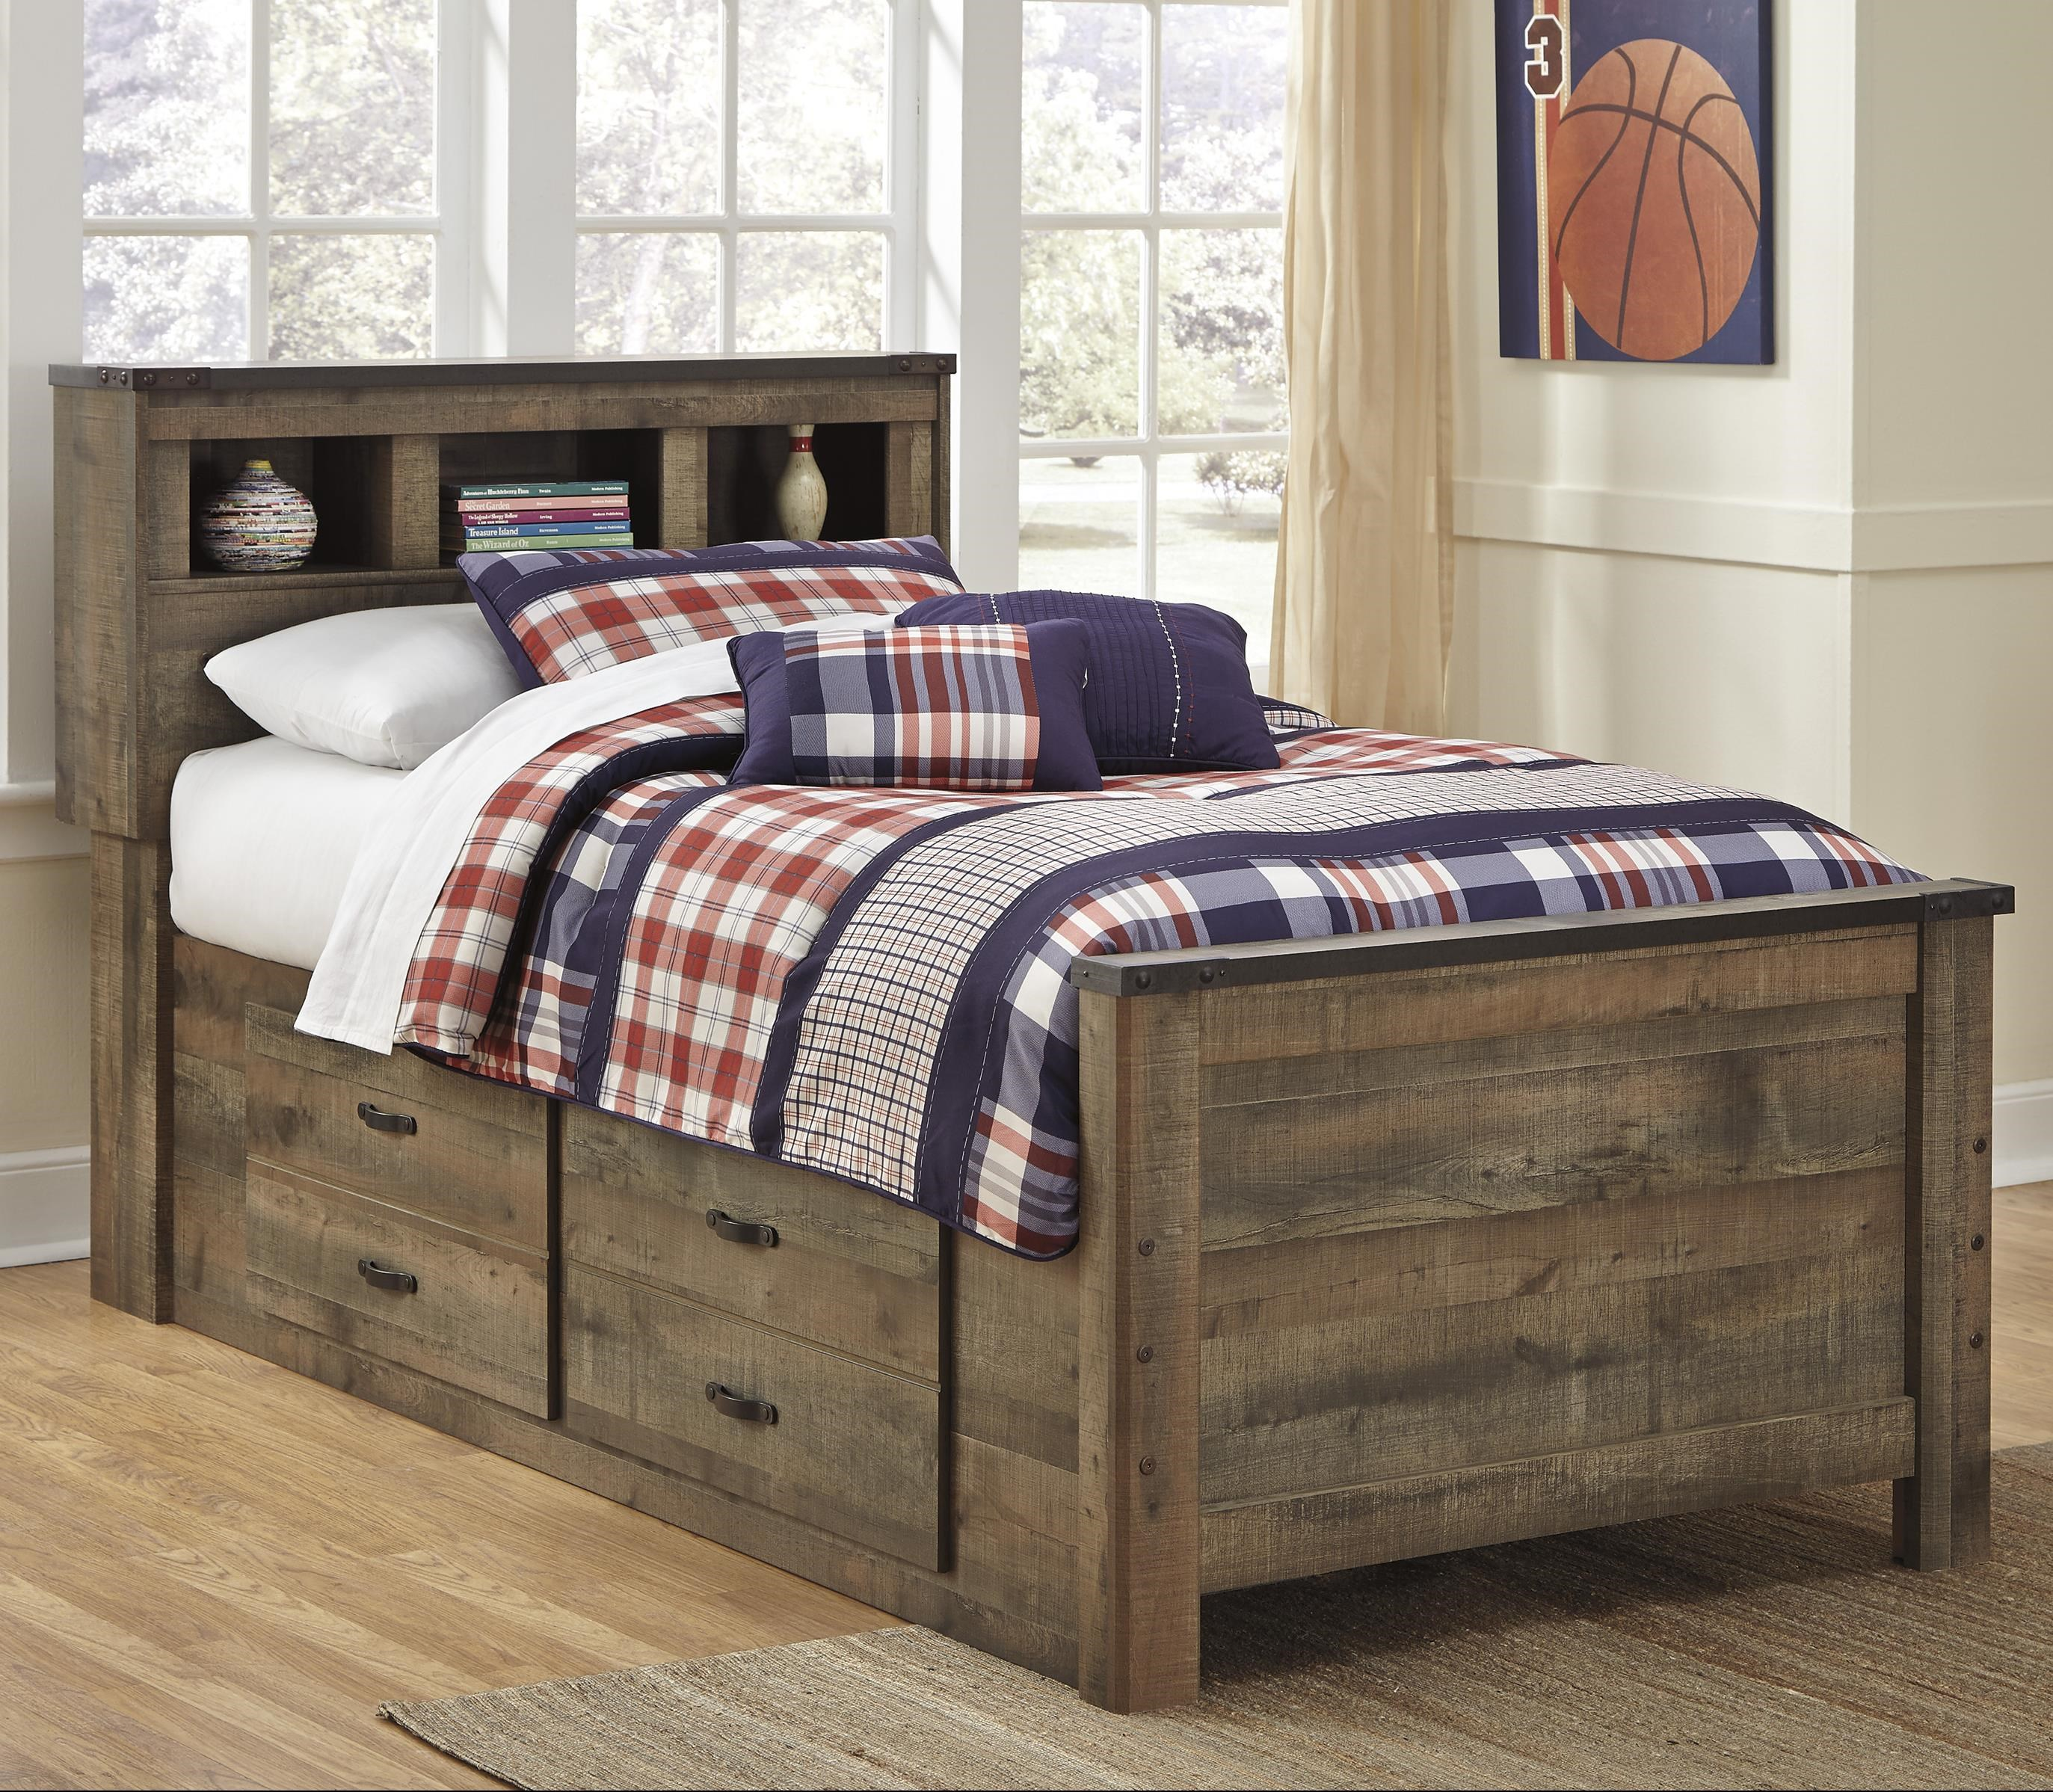 Signature Design By Ashley Trinell Rustic Look Twin Bookcase Bed With Under Bed Storage Royal Furniture Bookcase Beds